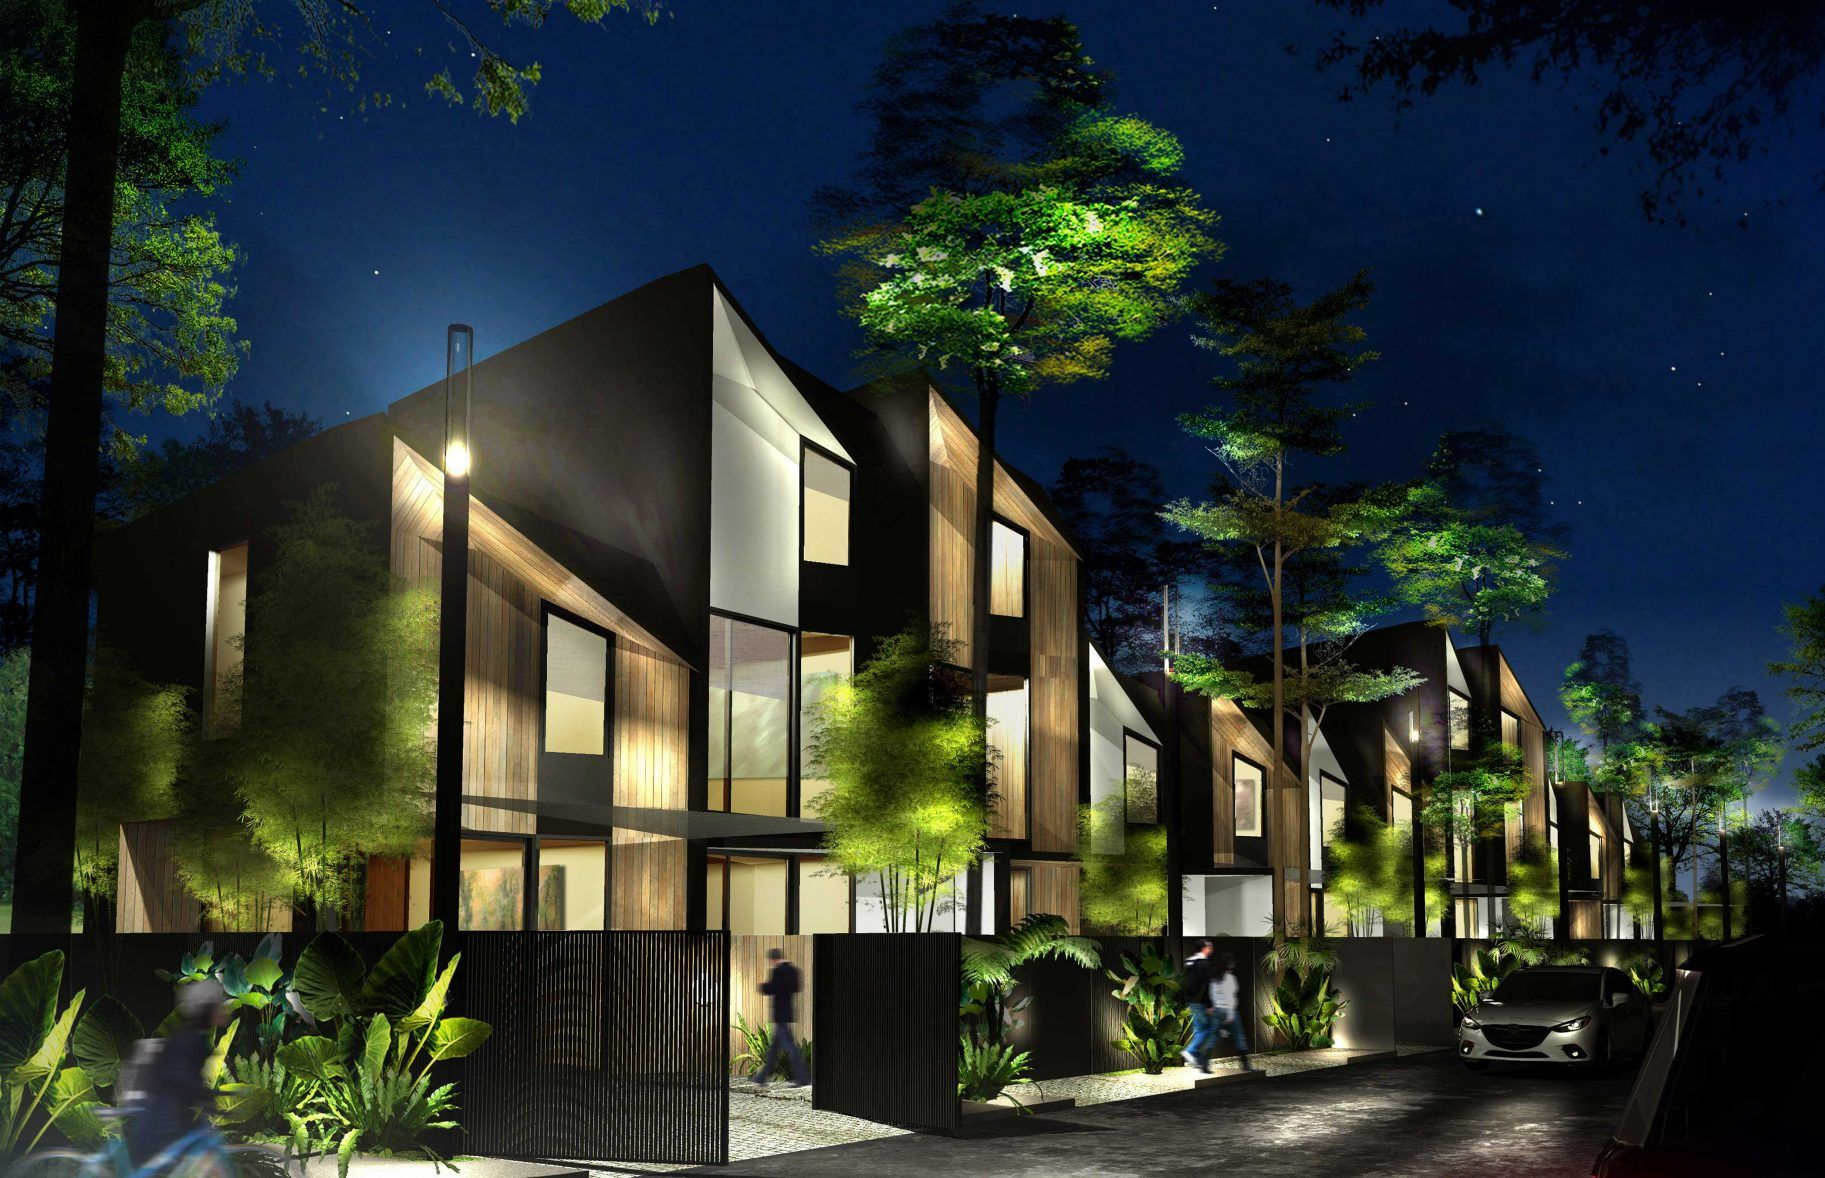 BUDJI ROYAL sets a new trend in the local prefab housing with